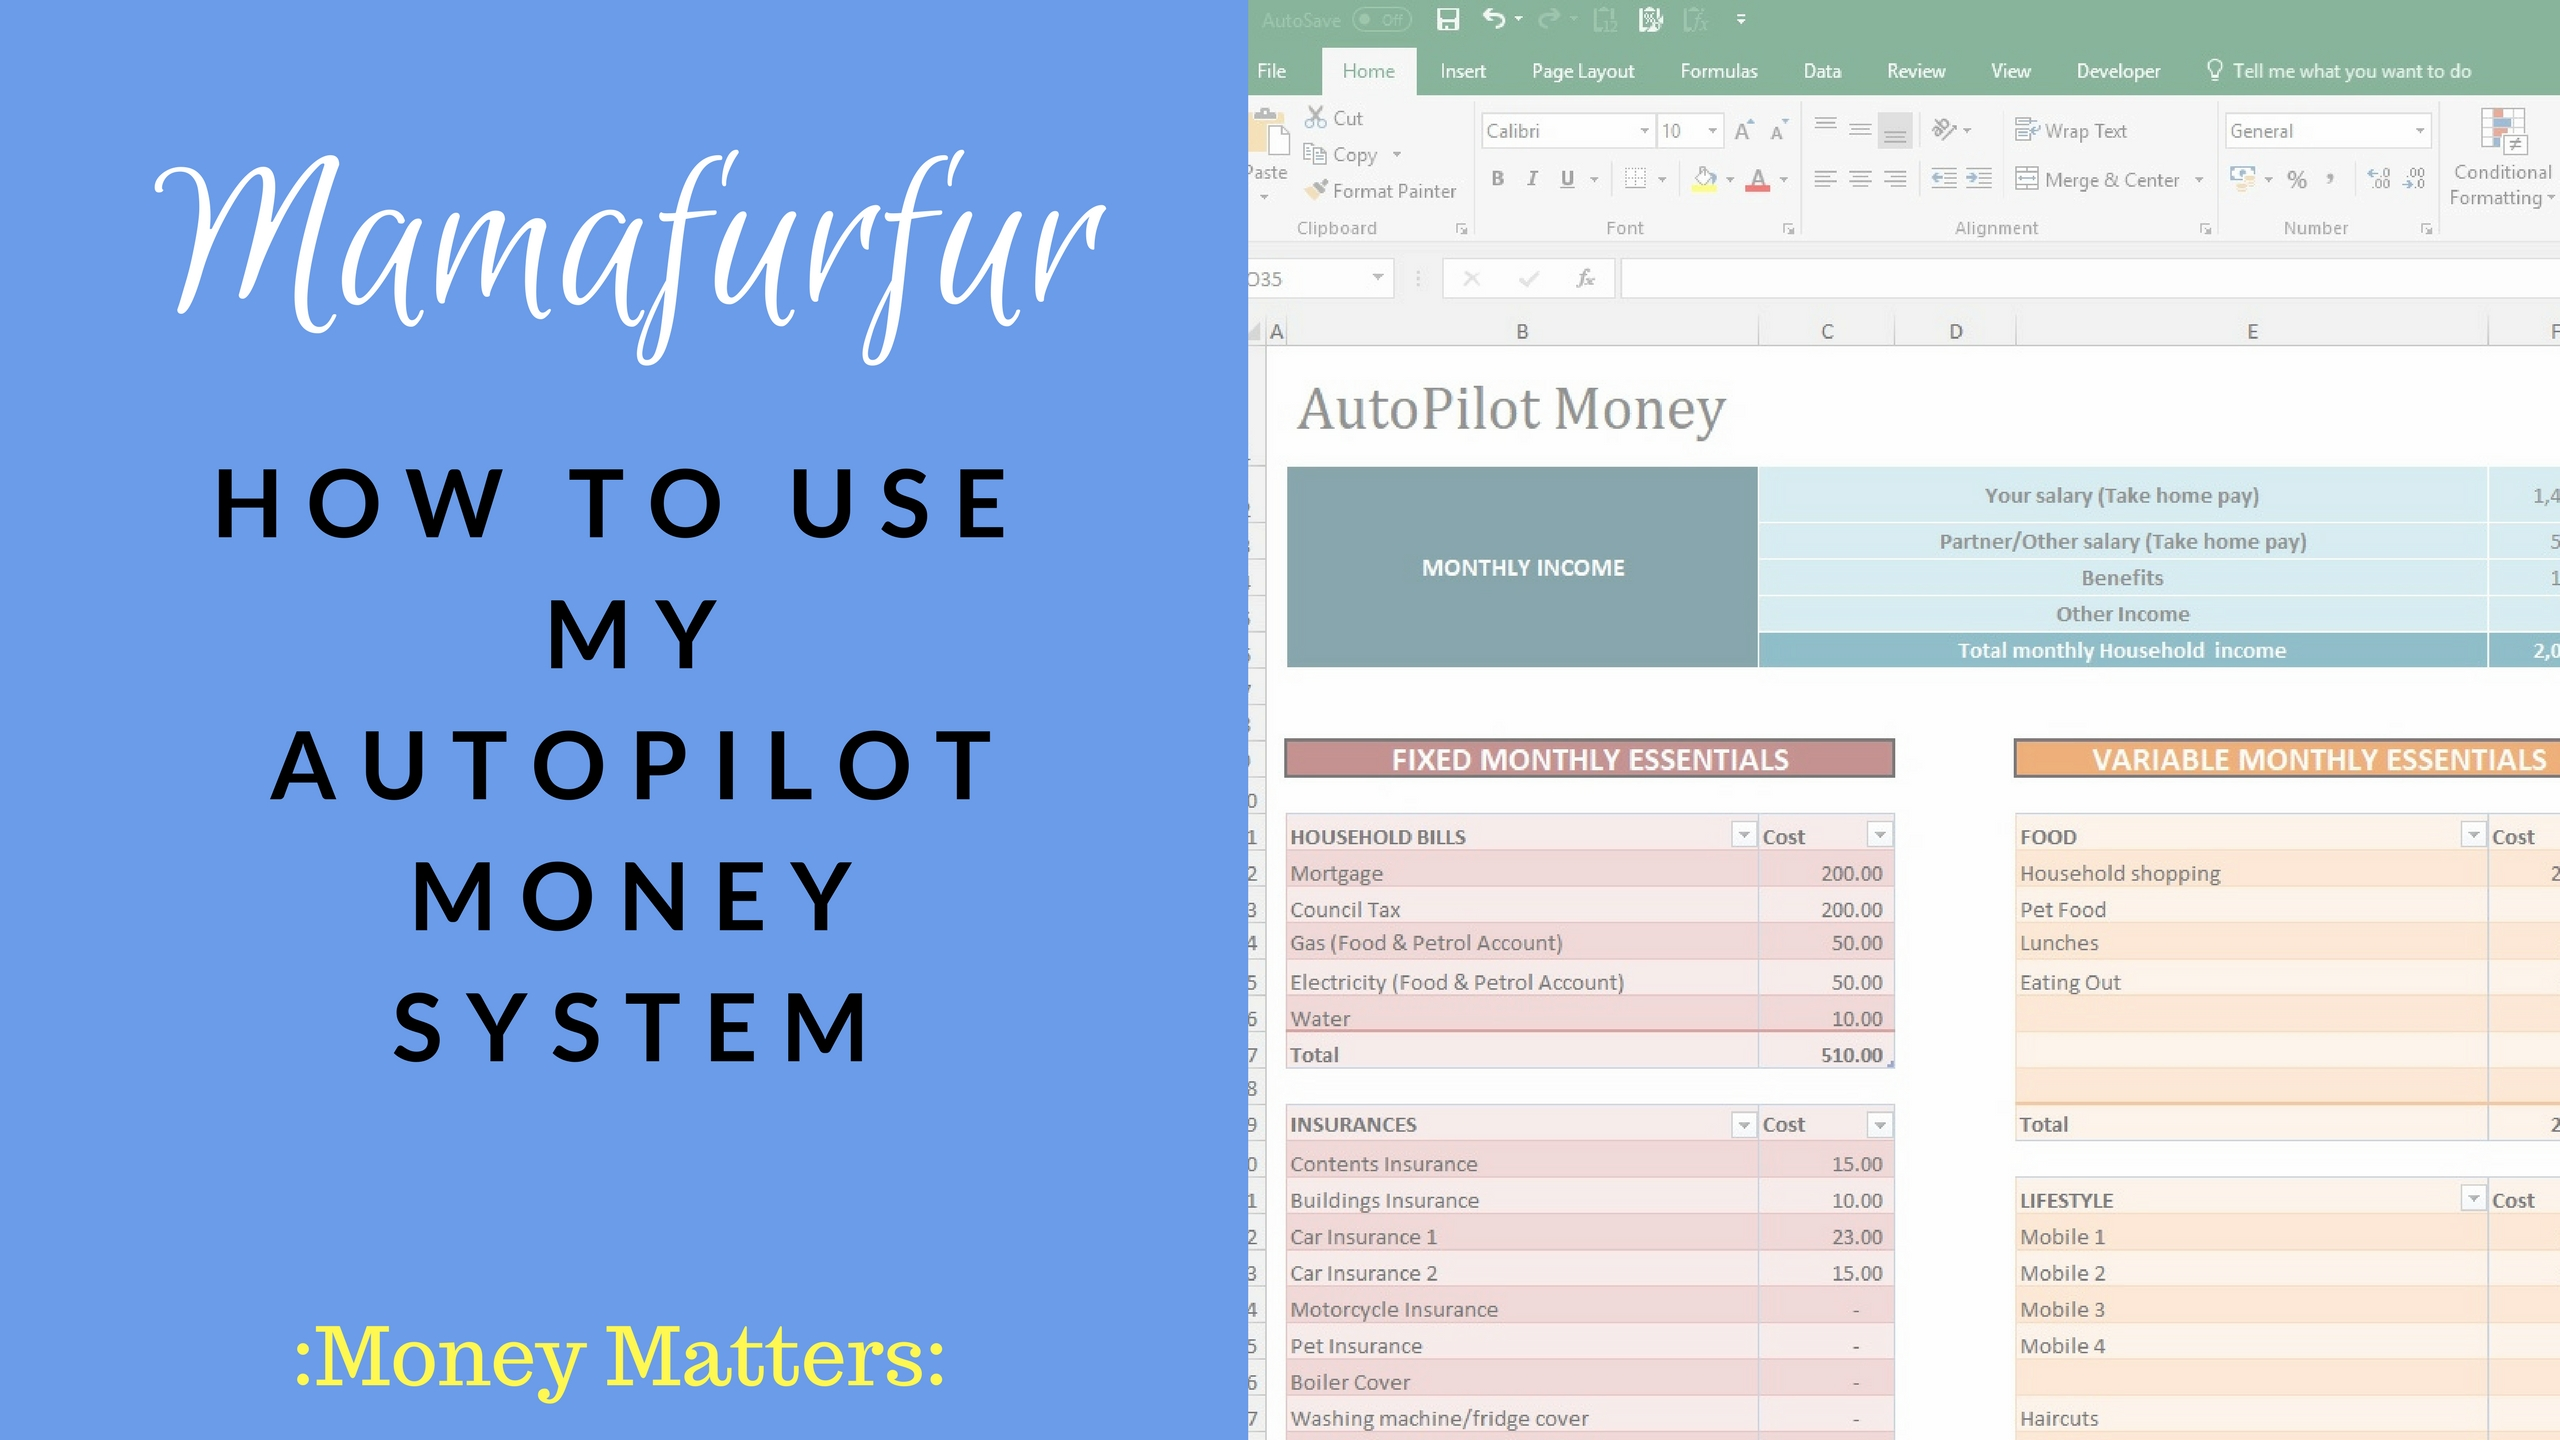 How to Budget - How to use my AutoPilot Money System